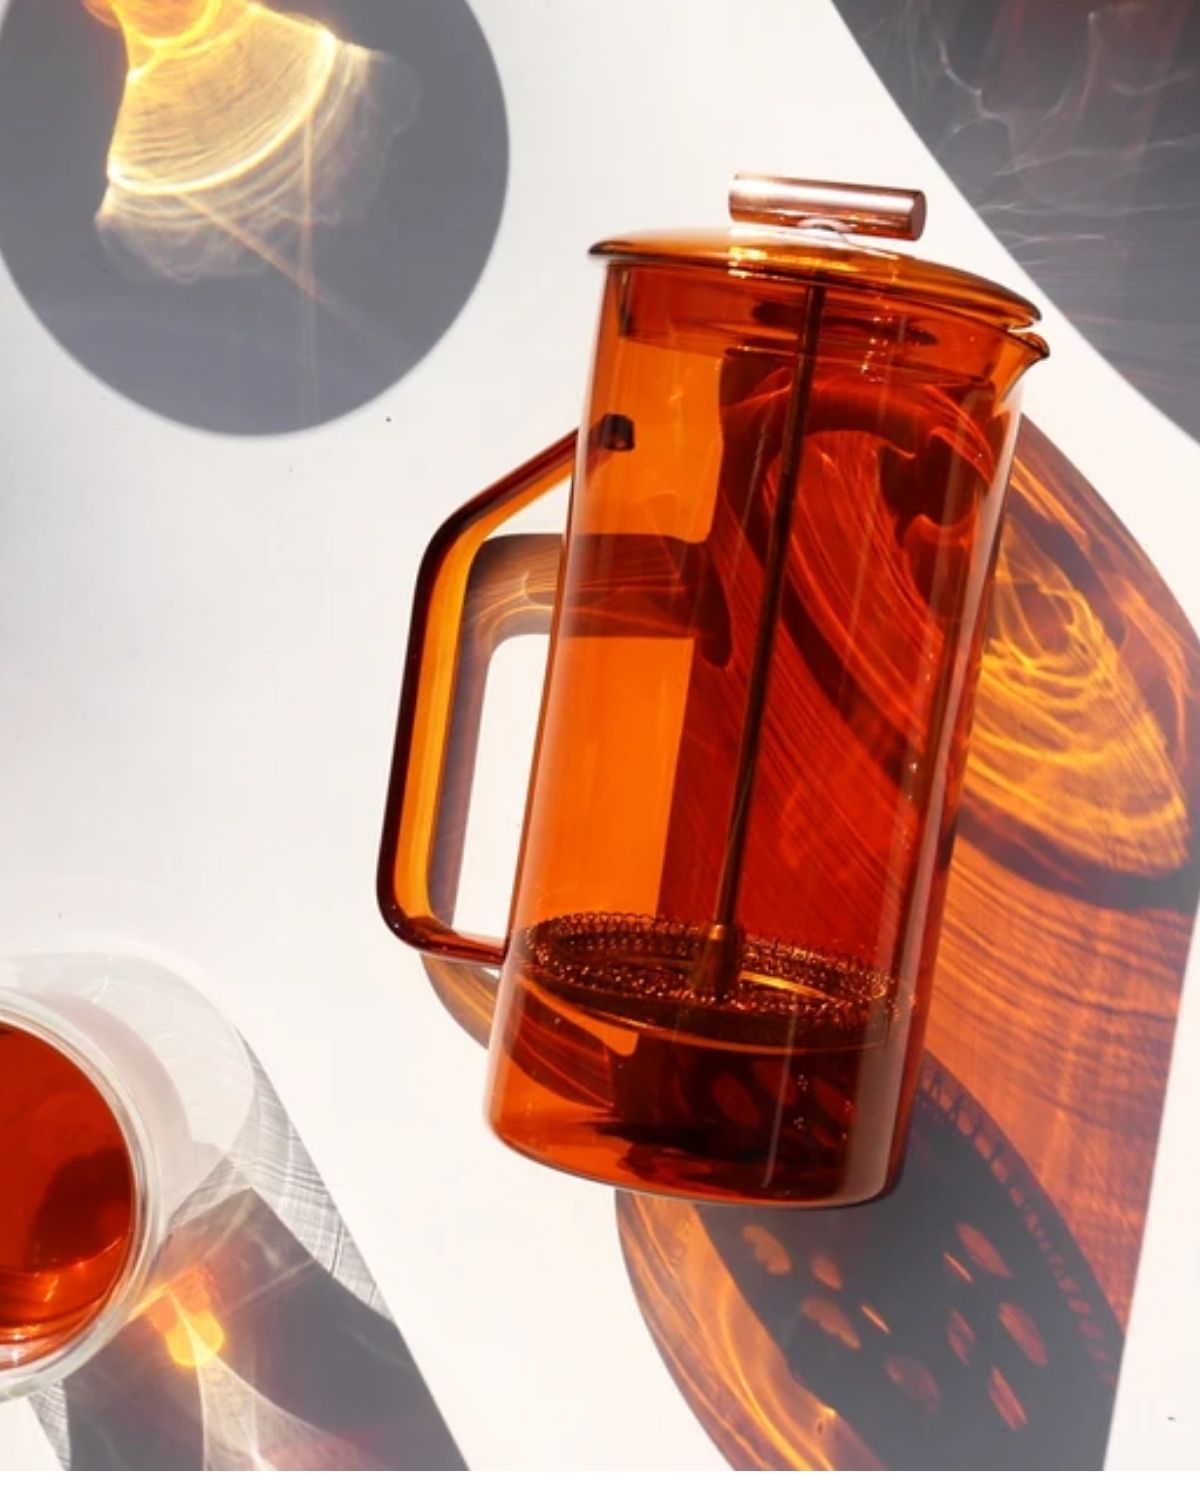 an orange glass french press, laying on a table in direct sunlight.